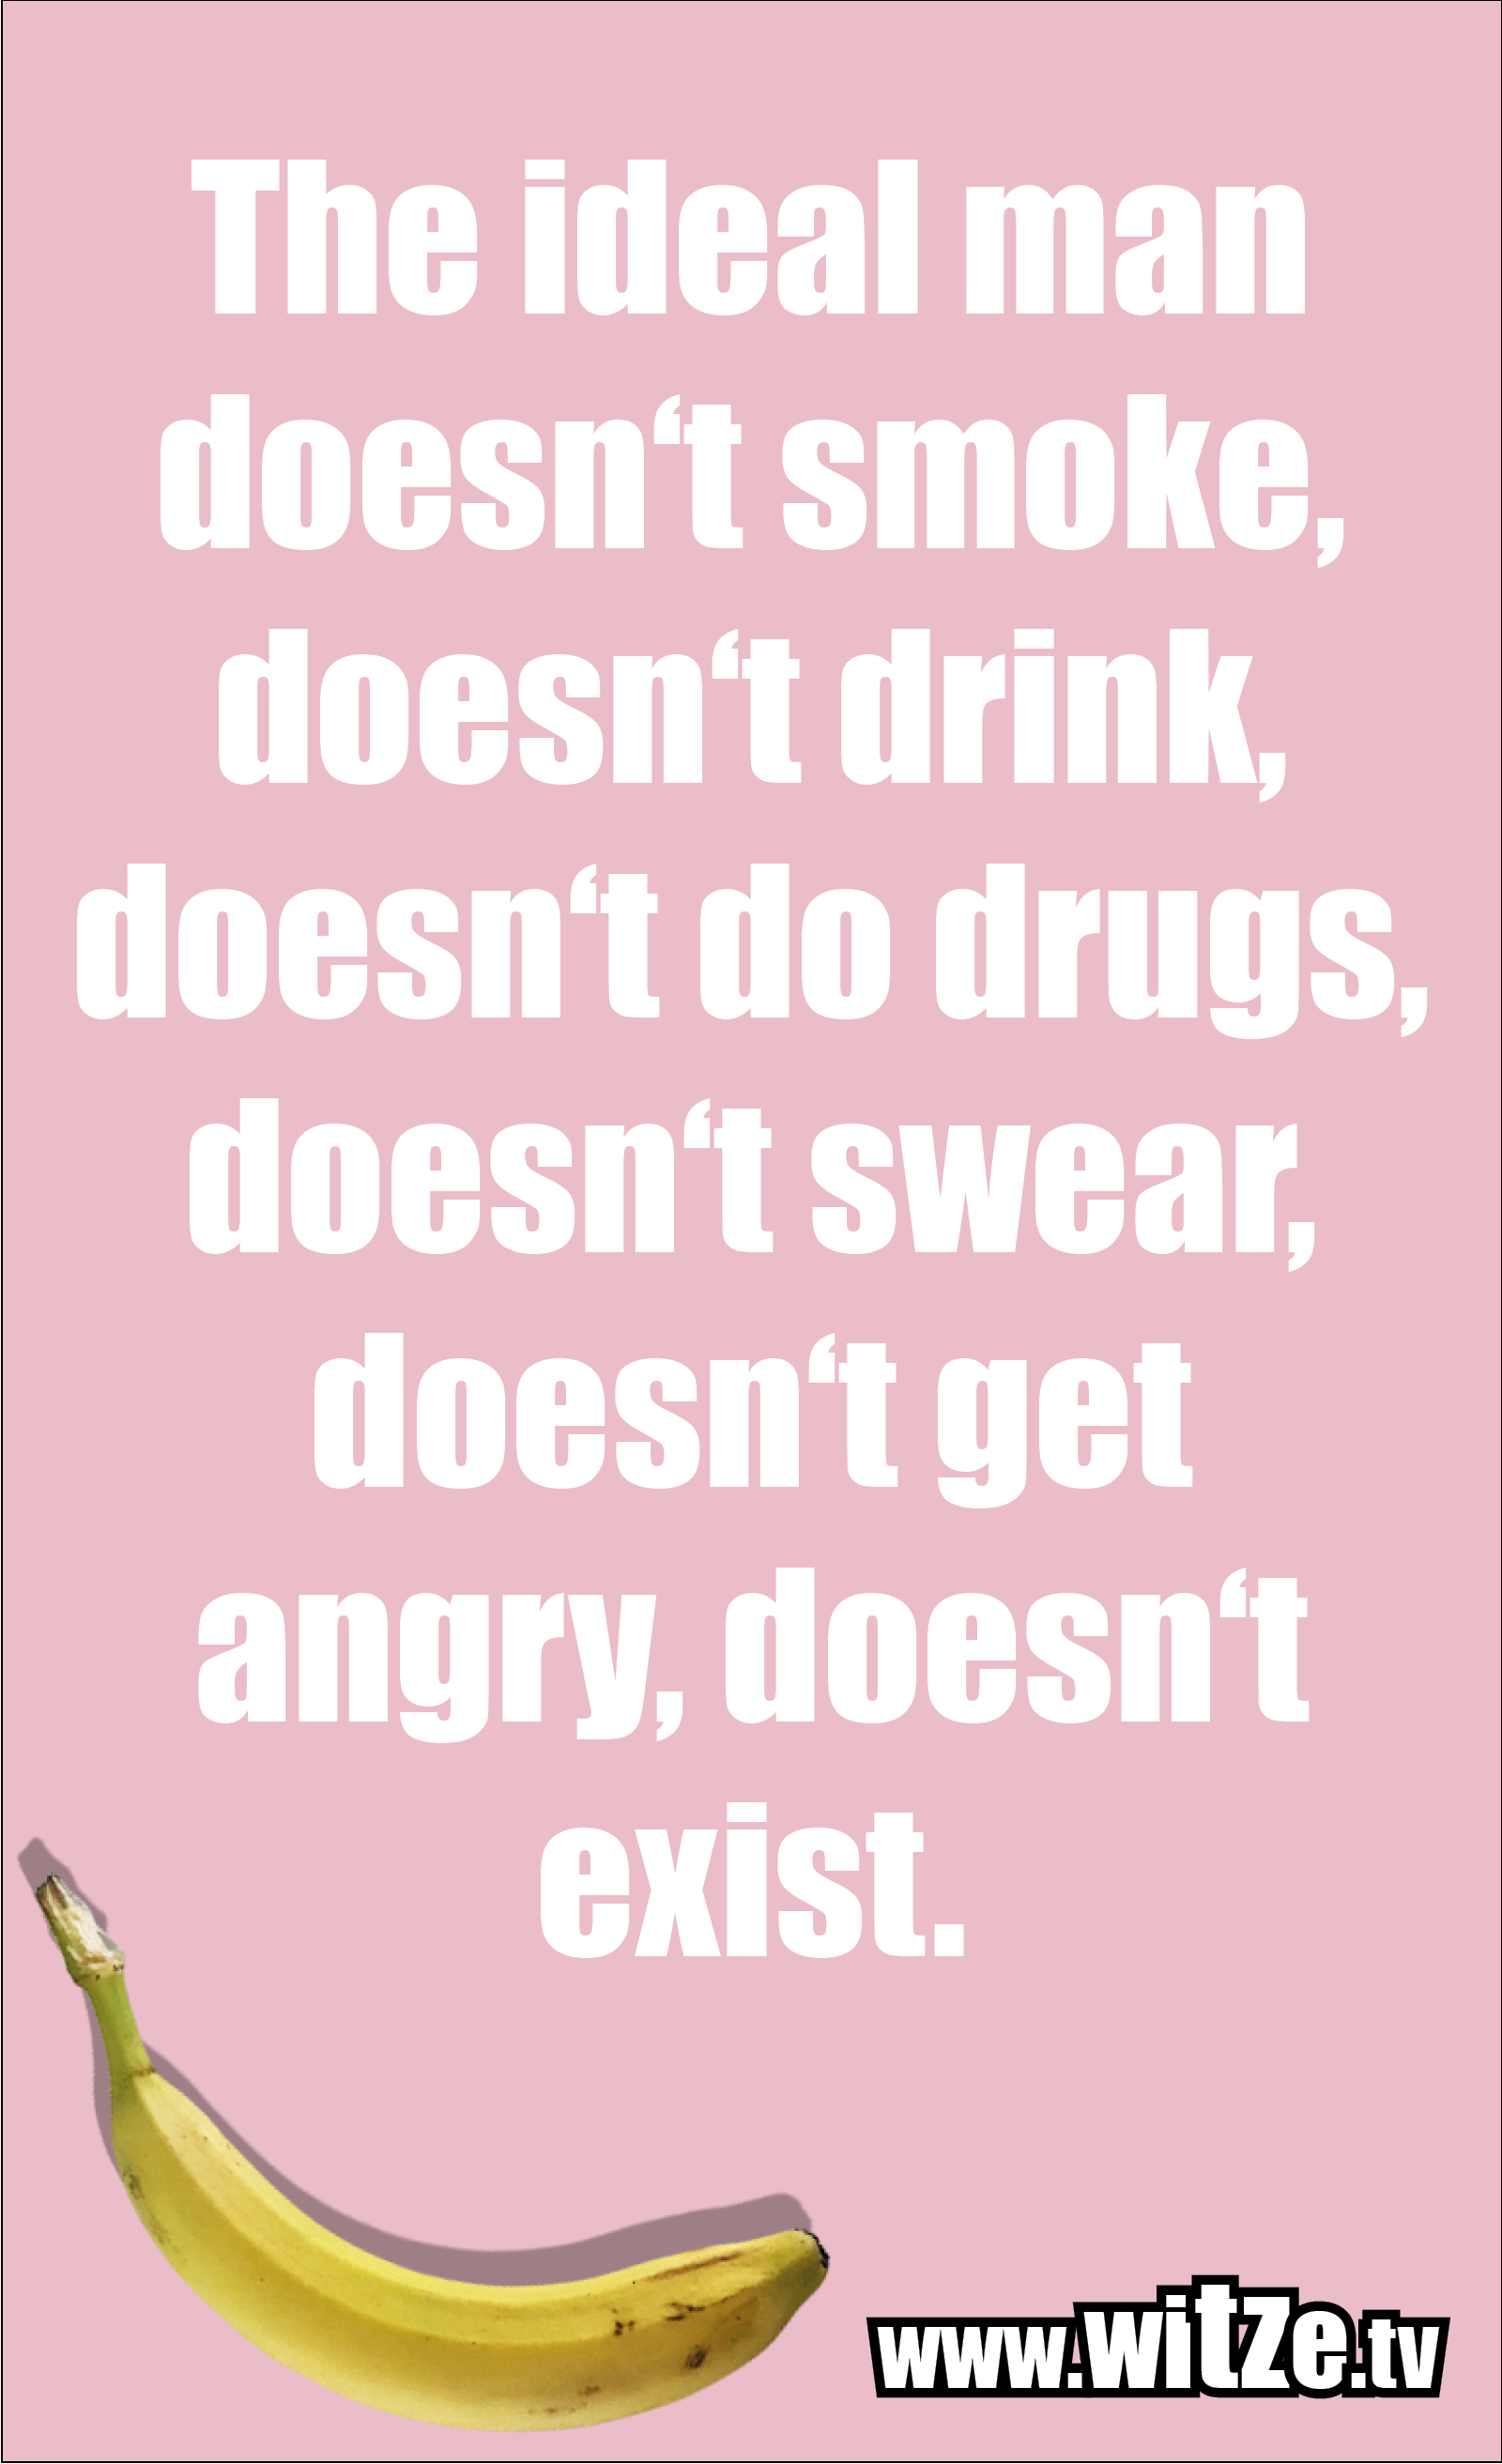 Funny sayings… The ideal man doesn't smoke, doesn't drink, doesn't do drugs, doesn't swear, doesn't get angry, doesn't exist.